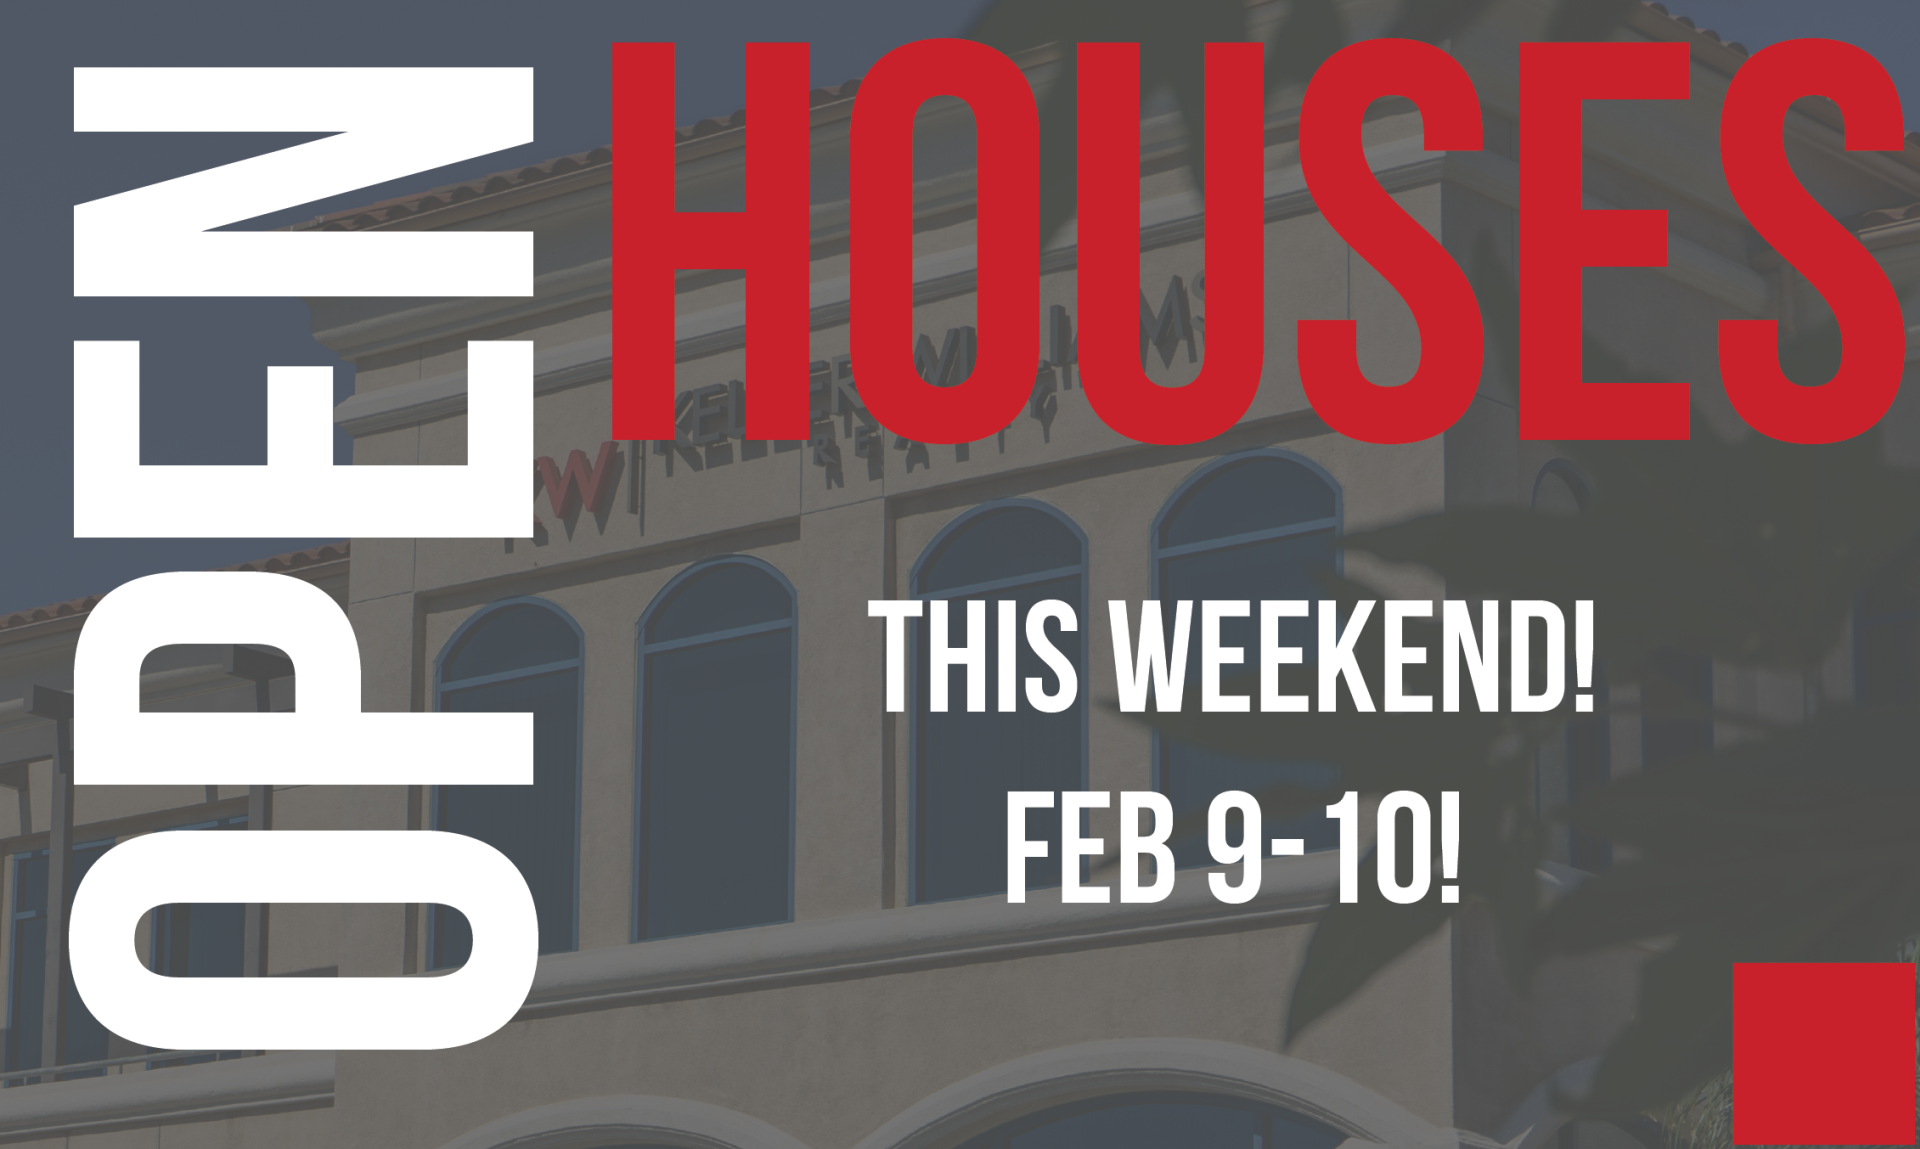 Open Houses This Weekend! Feb 9-10!